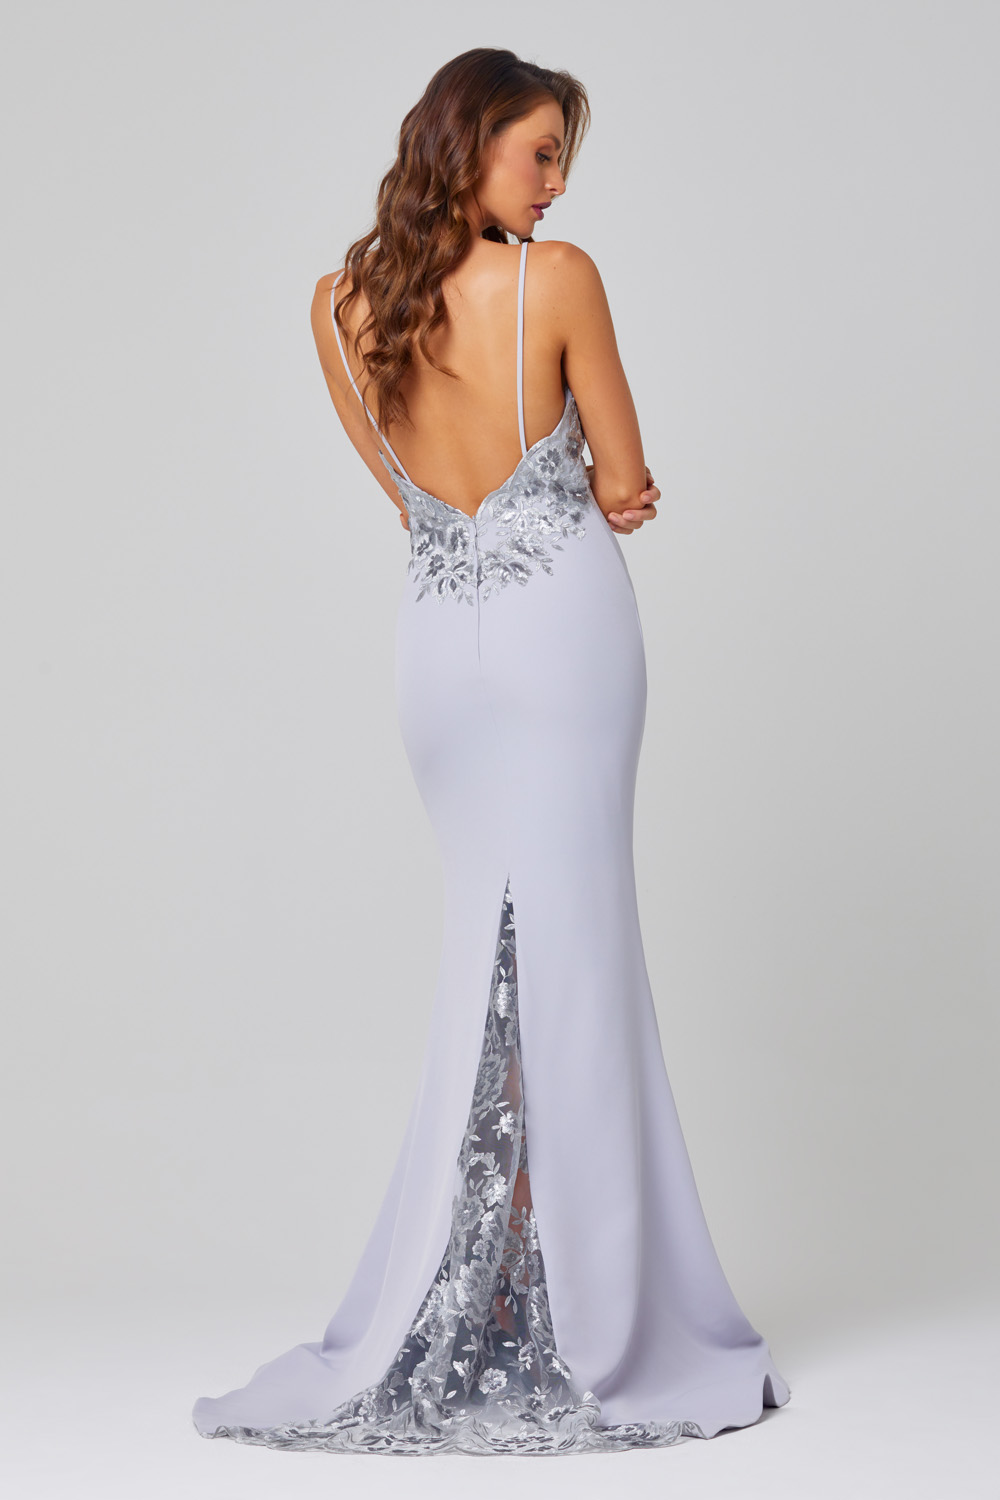 Pippa Low Back Sequin Lace Formal Dress - PO888 back